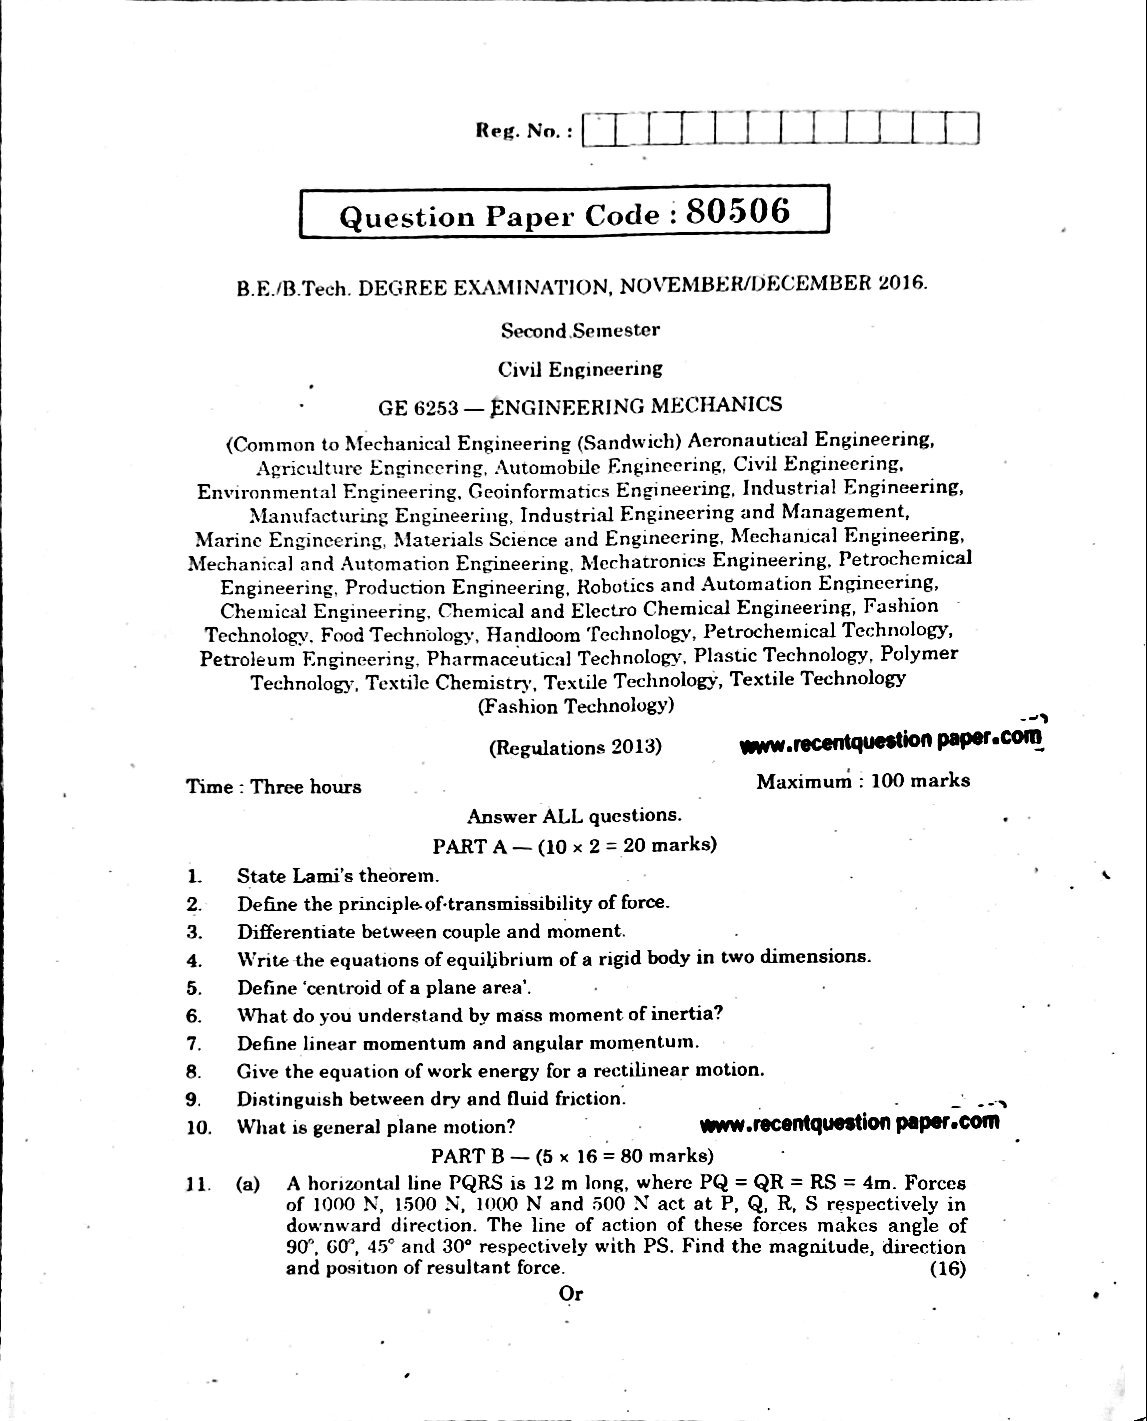 GE6253 Engineering Mechanics Anna University Question paper Nov/Dec 2016